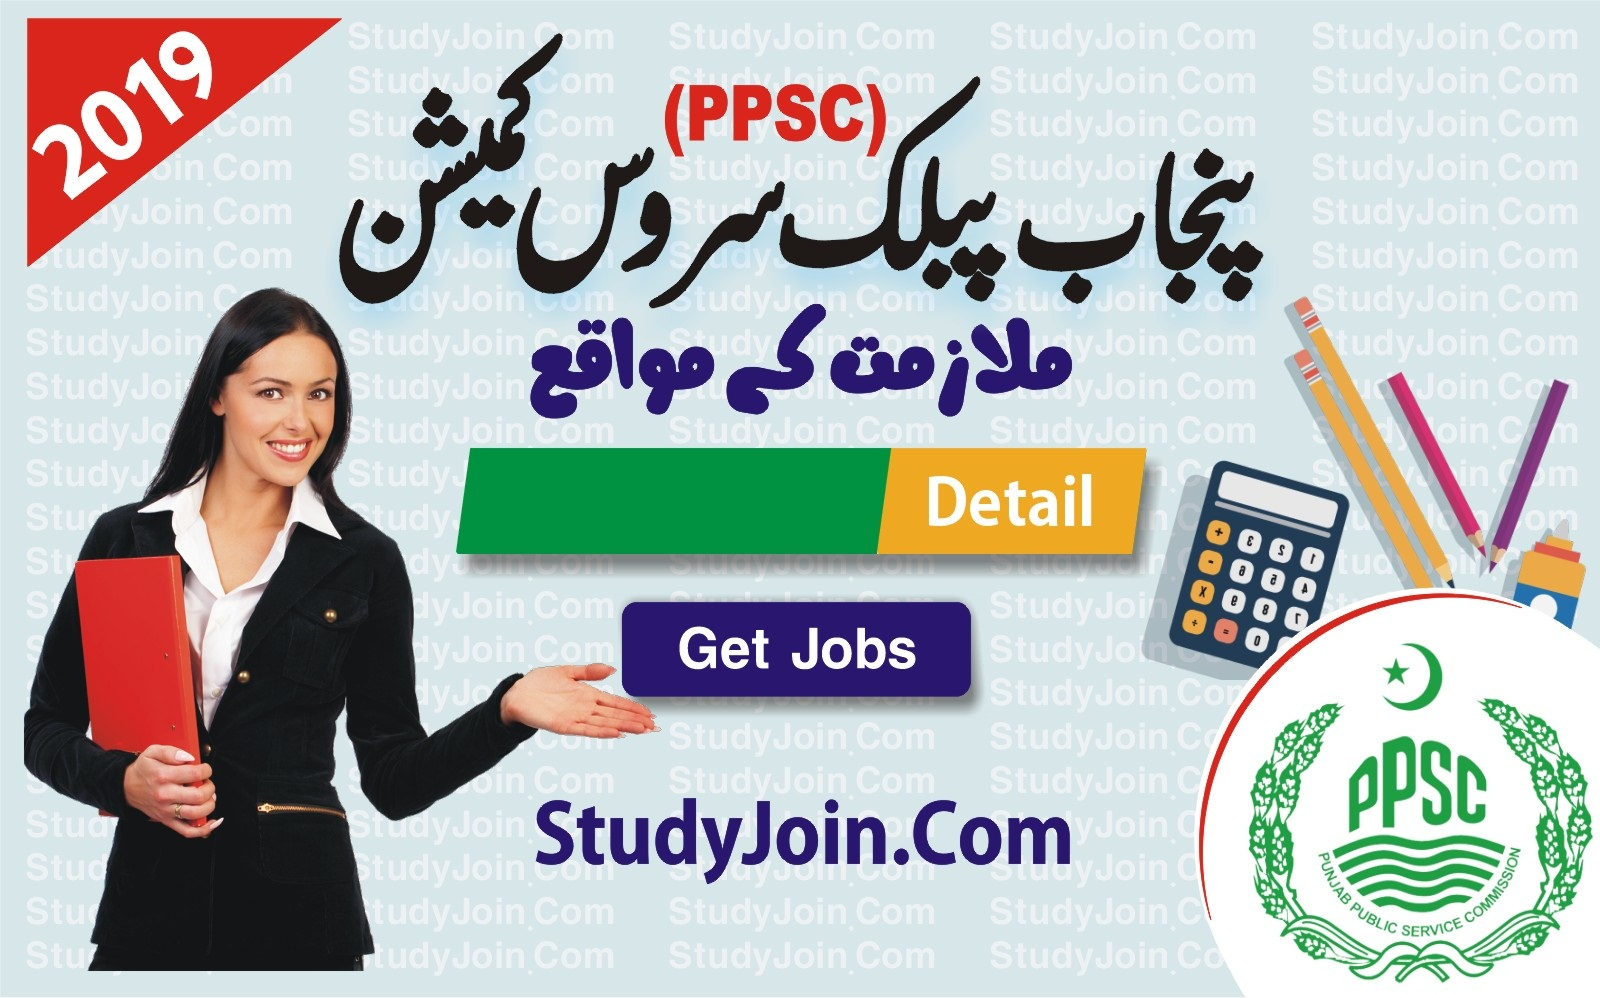 ppsc lecturer jobs 2019, ppsc jobs today, ppsc educators jobs 2019, ppsc recruitment 2019, ppsc upcoming jobs 2019, ppsc lecturer jobs 2019 advertisement, ppsc result, ppsc jobs 2019, ppsc syllabus, ppsc jobs online apply, ppsc challan form filled sample, jobsalert, paperpk, vulearning, jobs alert 2019, jobsalert pk police, banks jobs in pakistan, pakistanjobsbank, jobs pk, govt jobs in pakistan for teachers, ilm ki duniya jobs, jobsworld, jobs in pakistan 2019, jobs in pakistan newspapers, job in pk, job portal online, govt job website, olx Jobs, rozee pk Jobs, cv maker